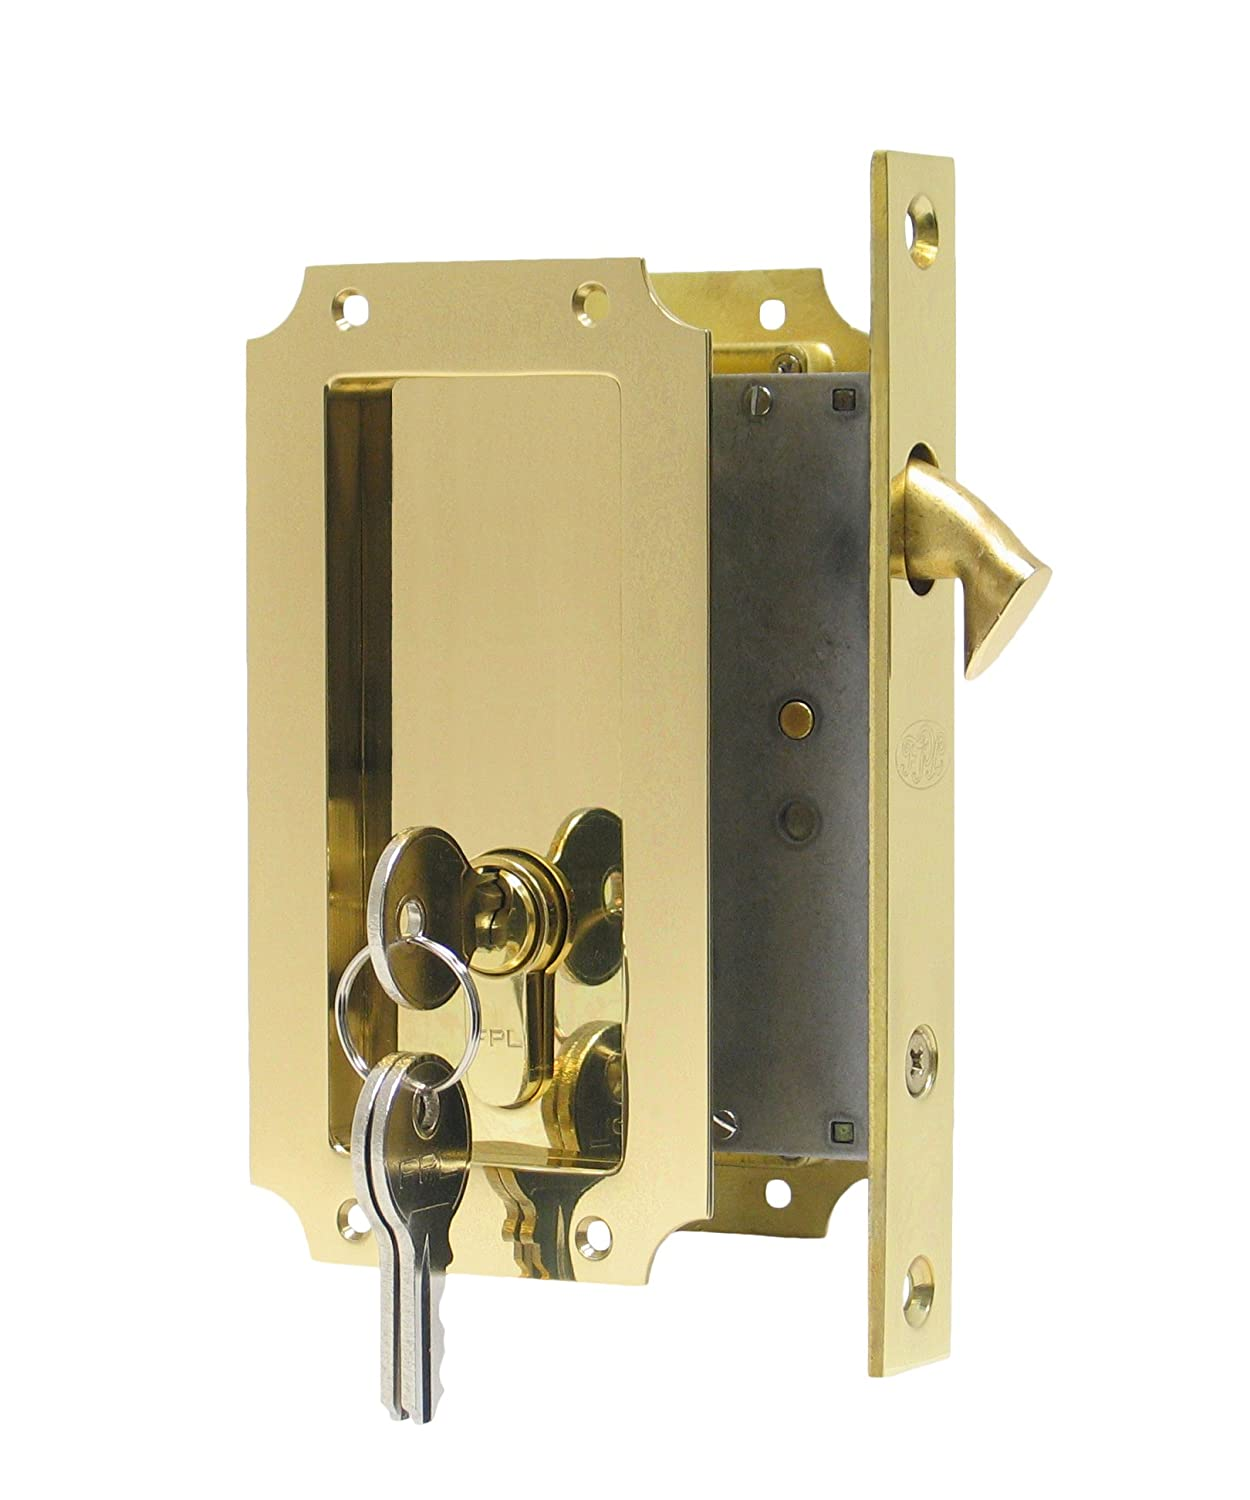 Manor By FPL  Solid Brass Pocket Door Mortise Lock Set With Double Keyed  Euro Profile Cylinder   Antique Brass   Pocket Door Hardware   Amazon.com